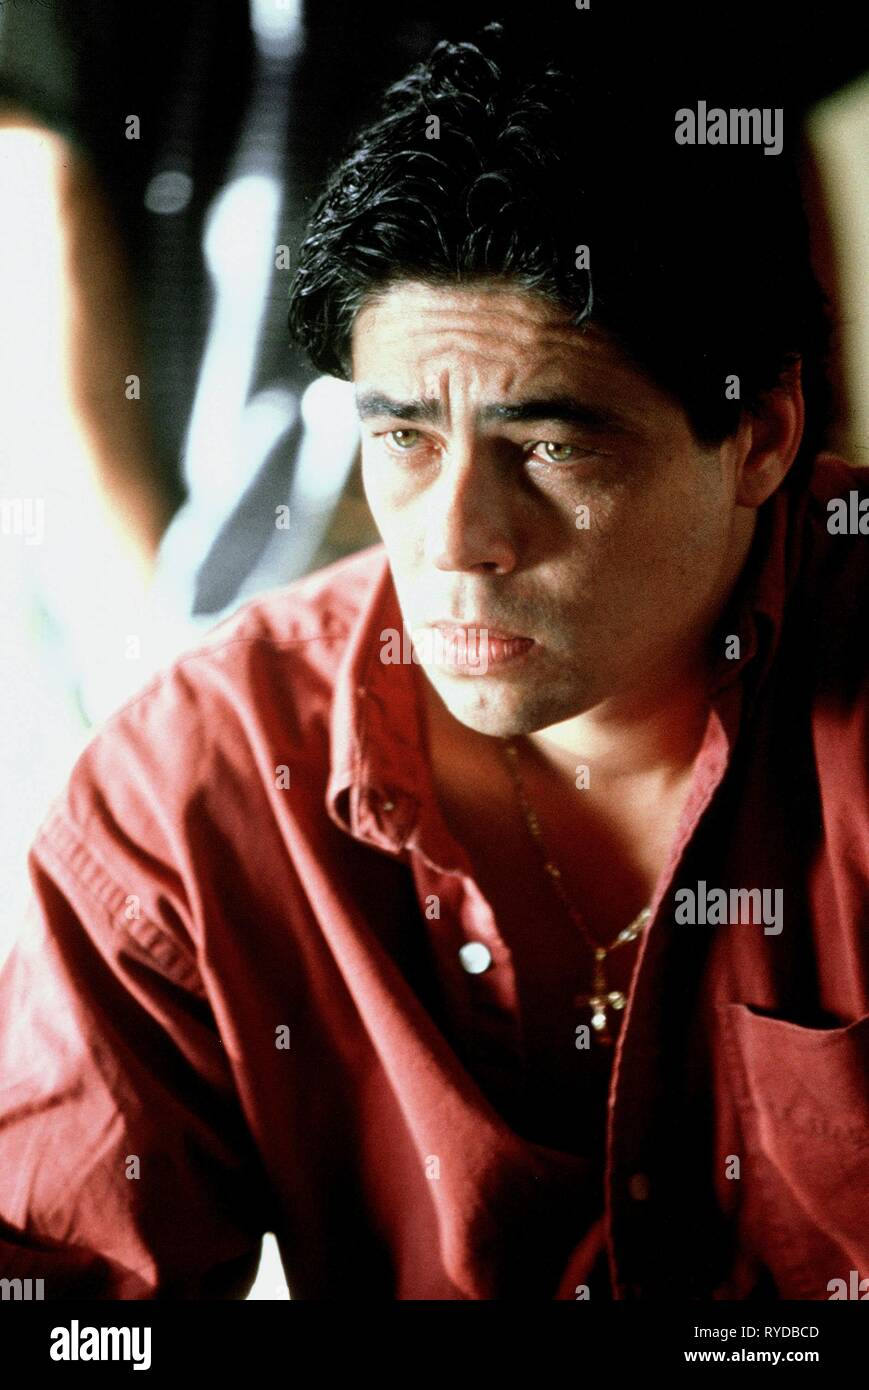 Benicio Del Toro Traffic 2000 Stock Photo Alamy